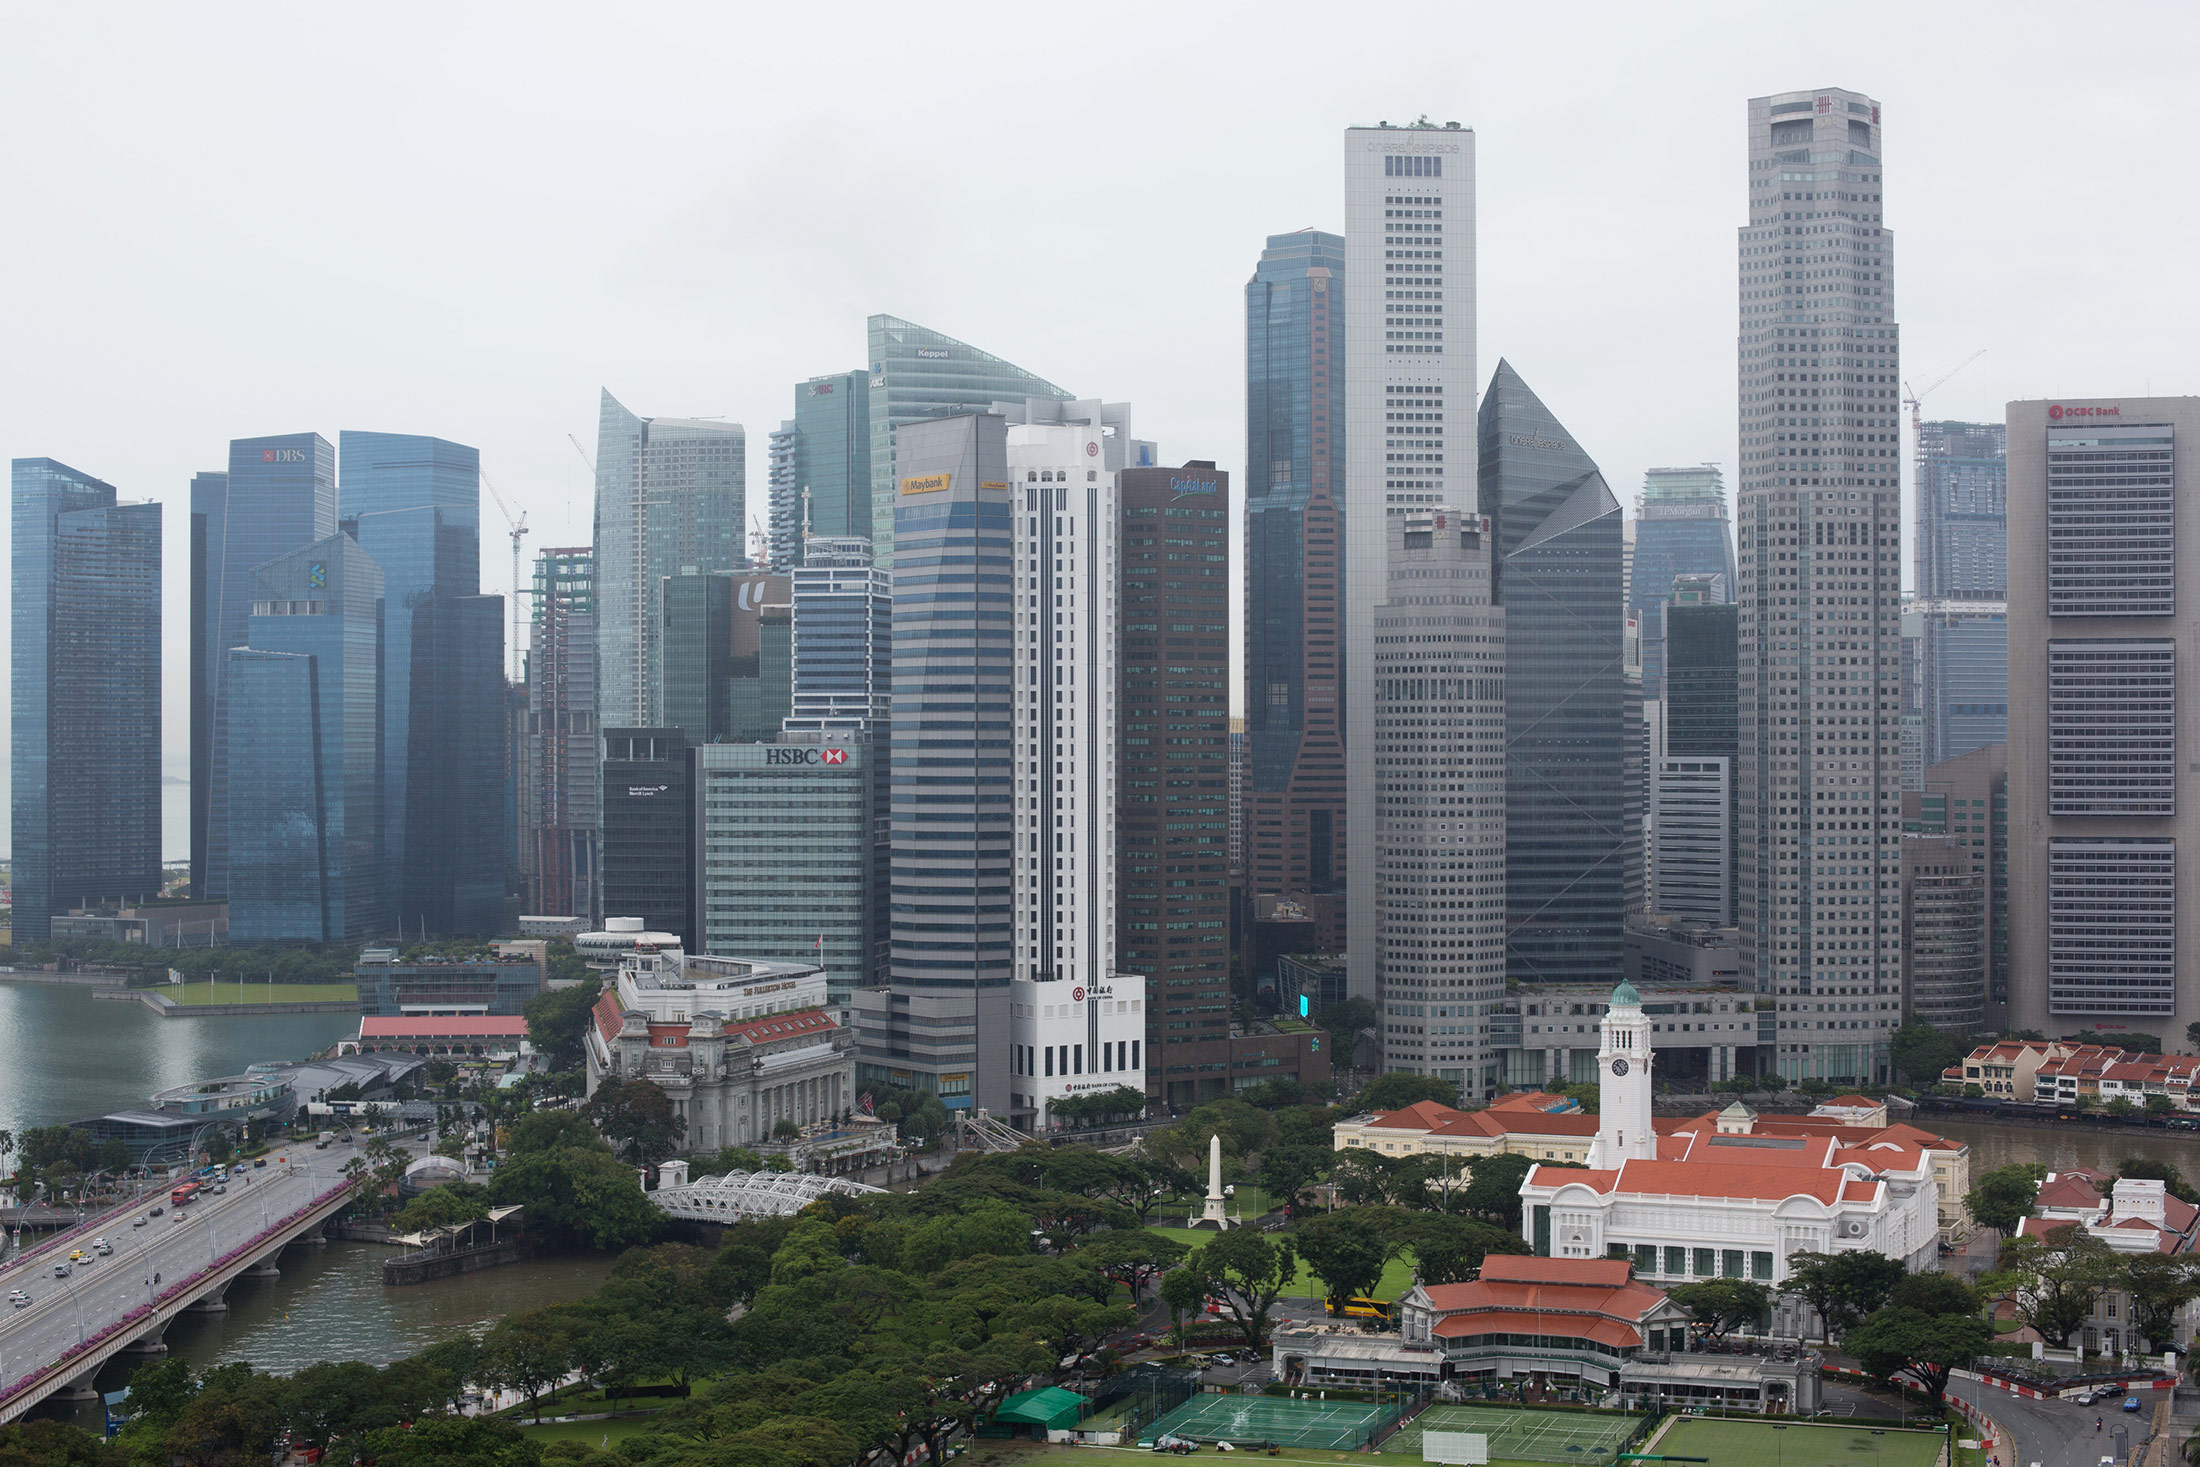 Singapore central bank linked to forex probe